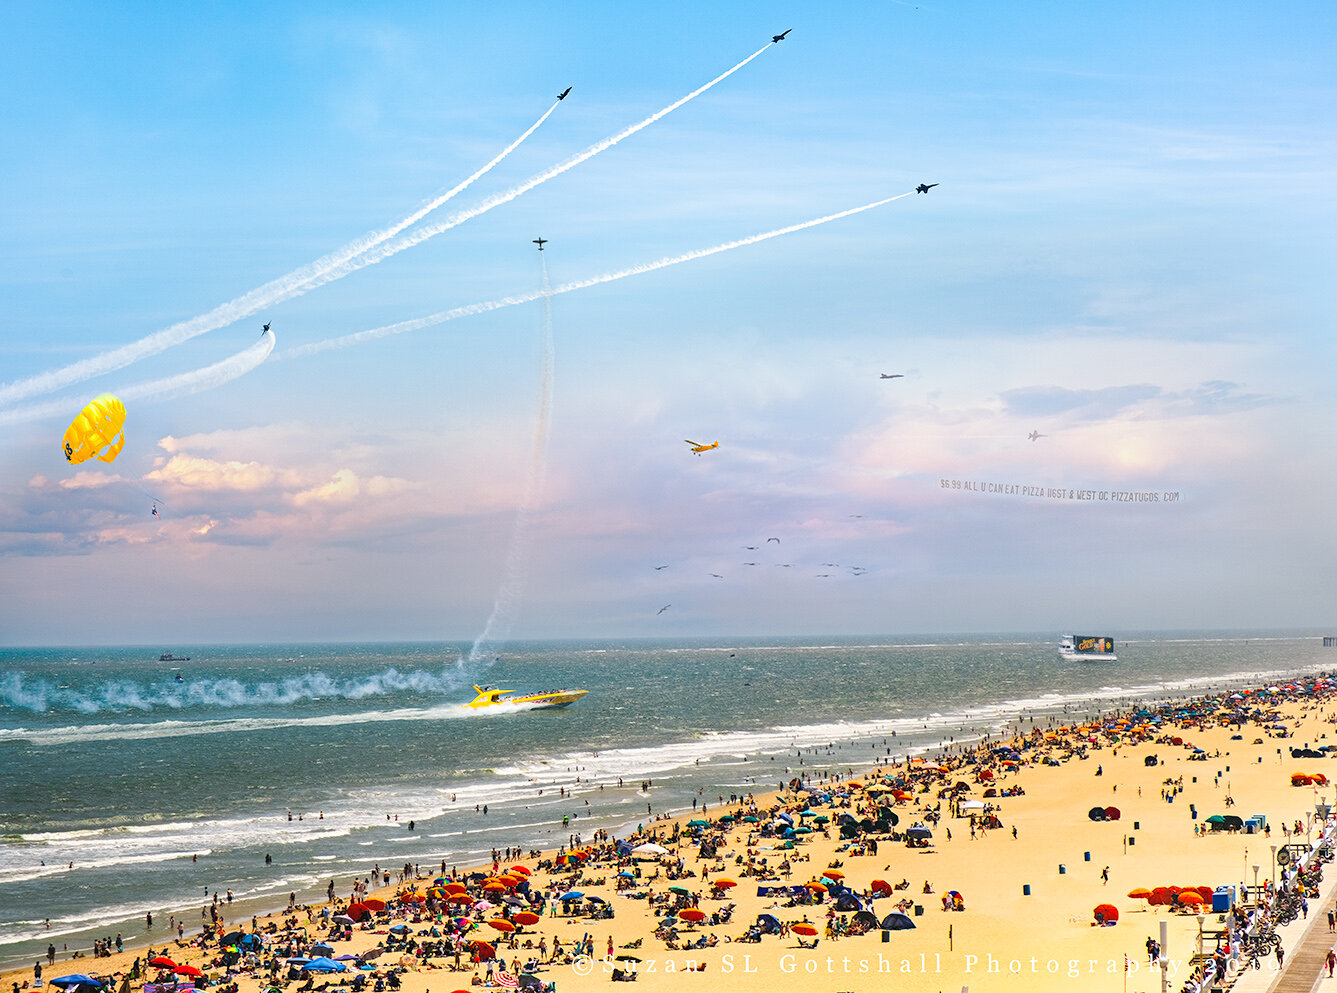 ws_1relaxing_day_at the_beach7_proofprt_fltblur_re-editcolor_alien1_©suzanslgottshall_DSF2019.jpg